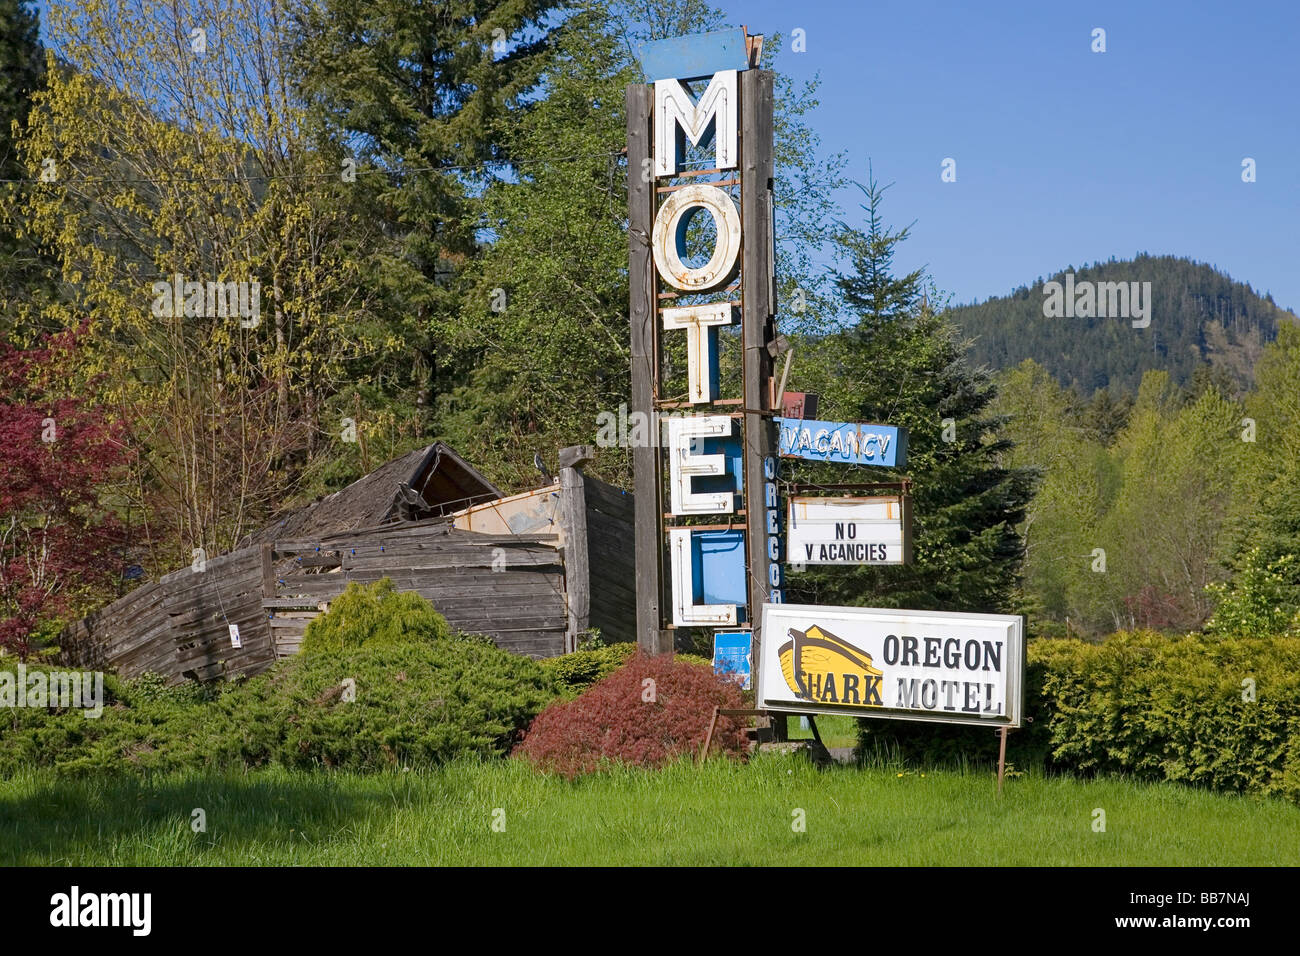 An old motel and signs for vacancy and no vacancies in the Willamette Valley near Portland Oregon - Stock Image